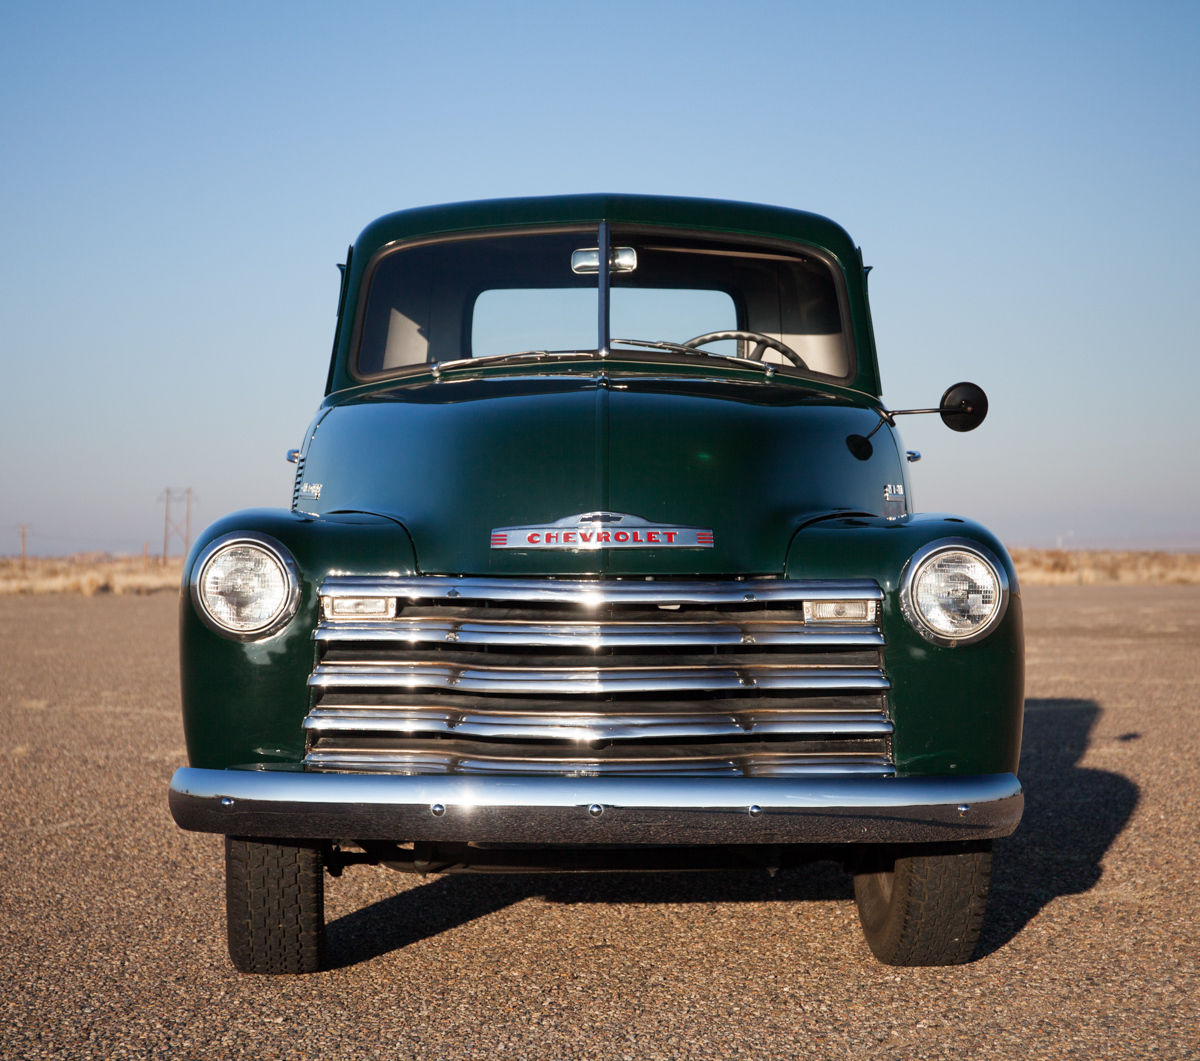 Beautiful 1951 Chevrolet Truck 3100 Shortbed Restored